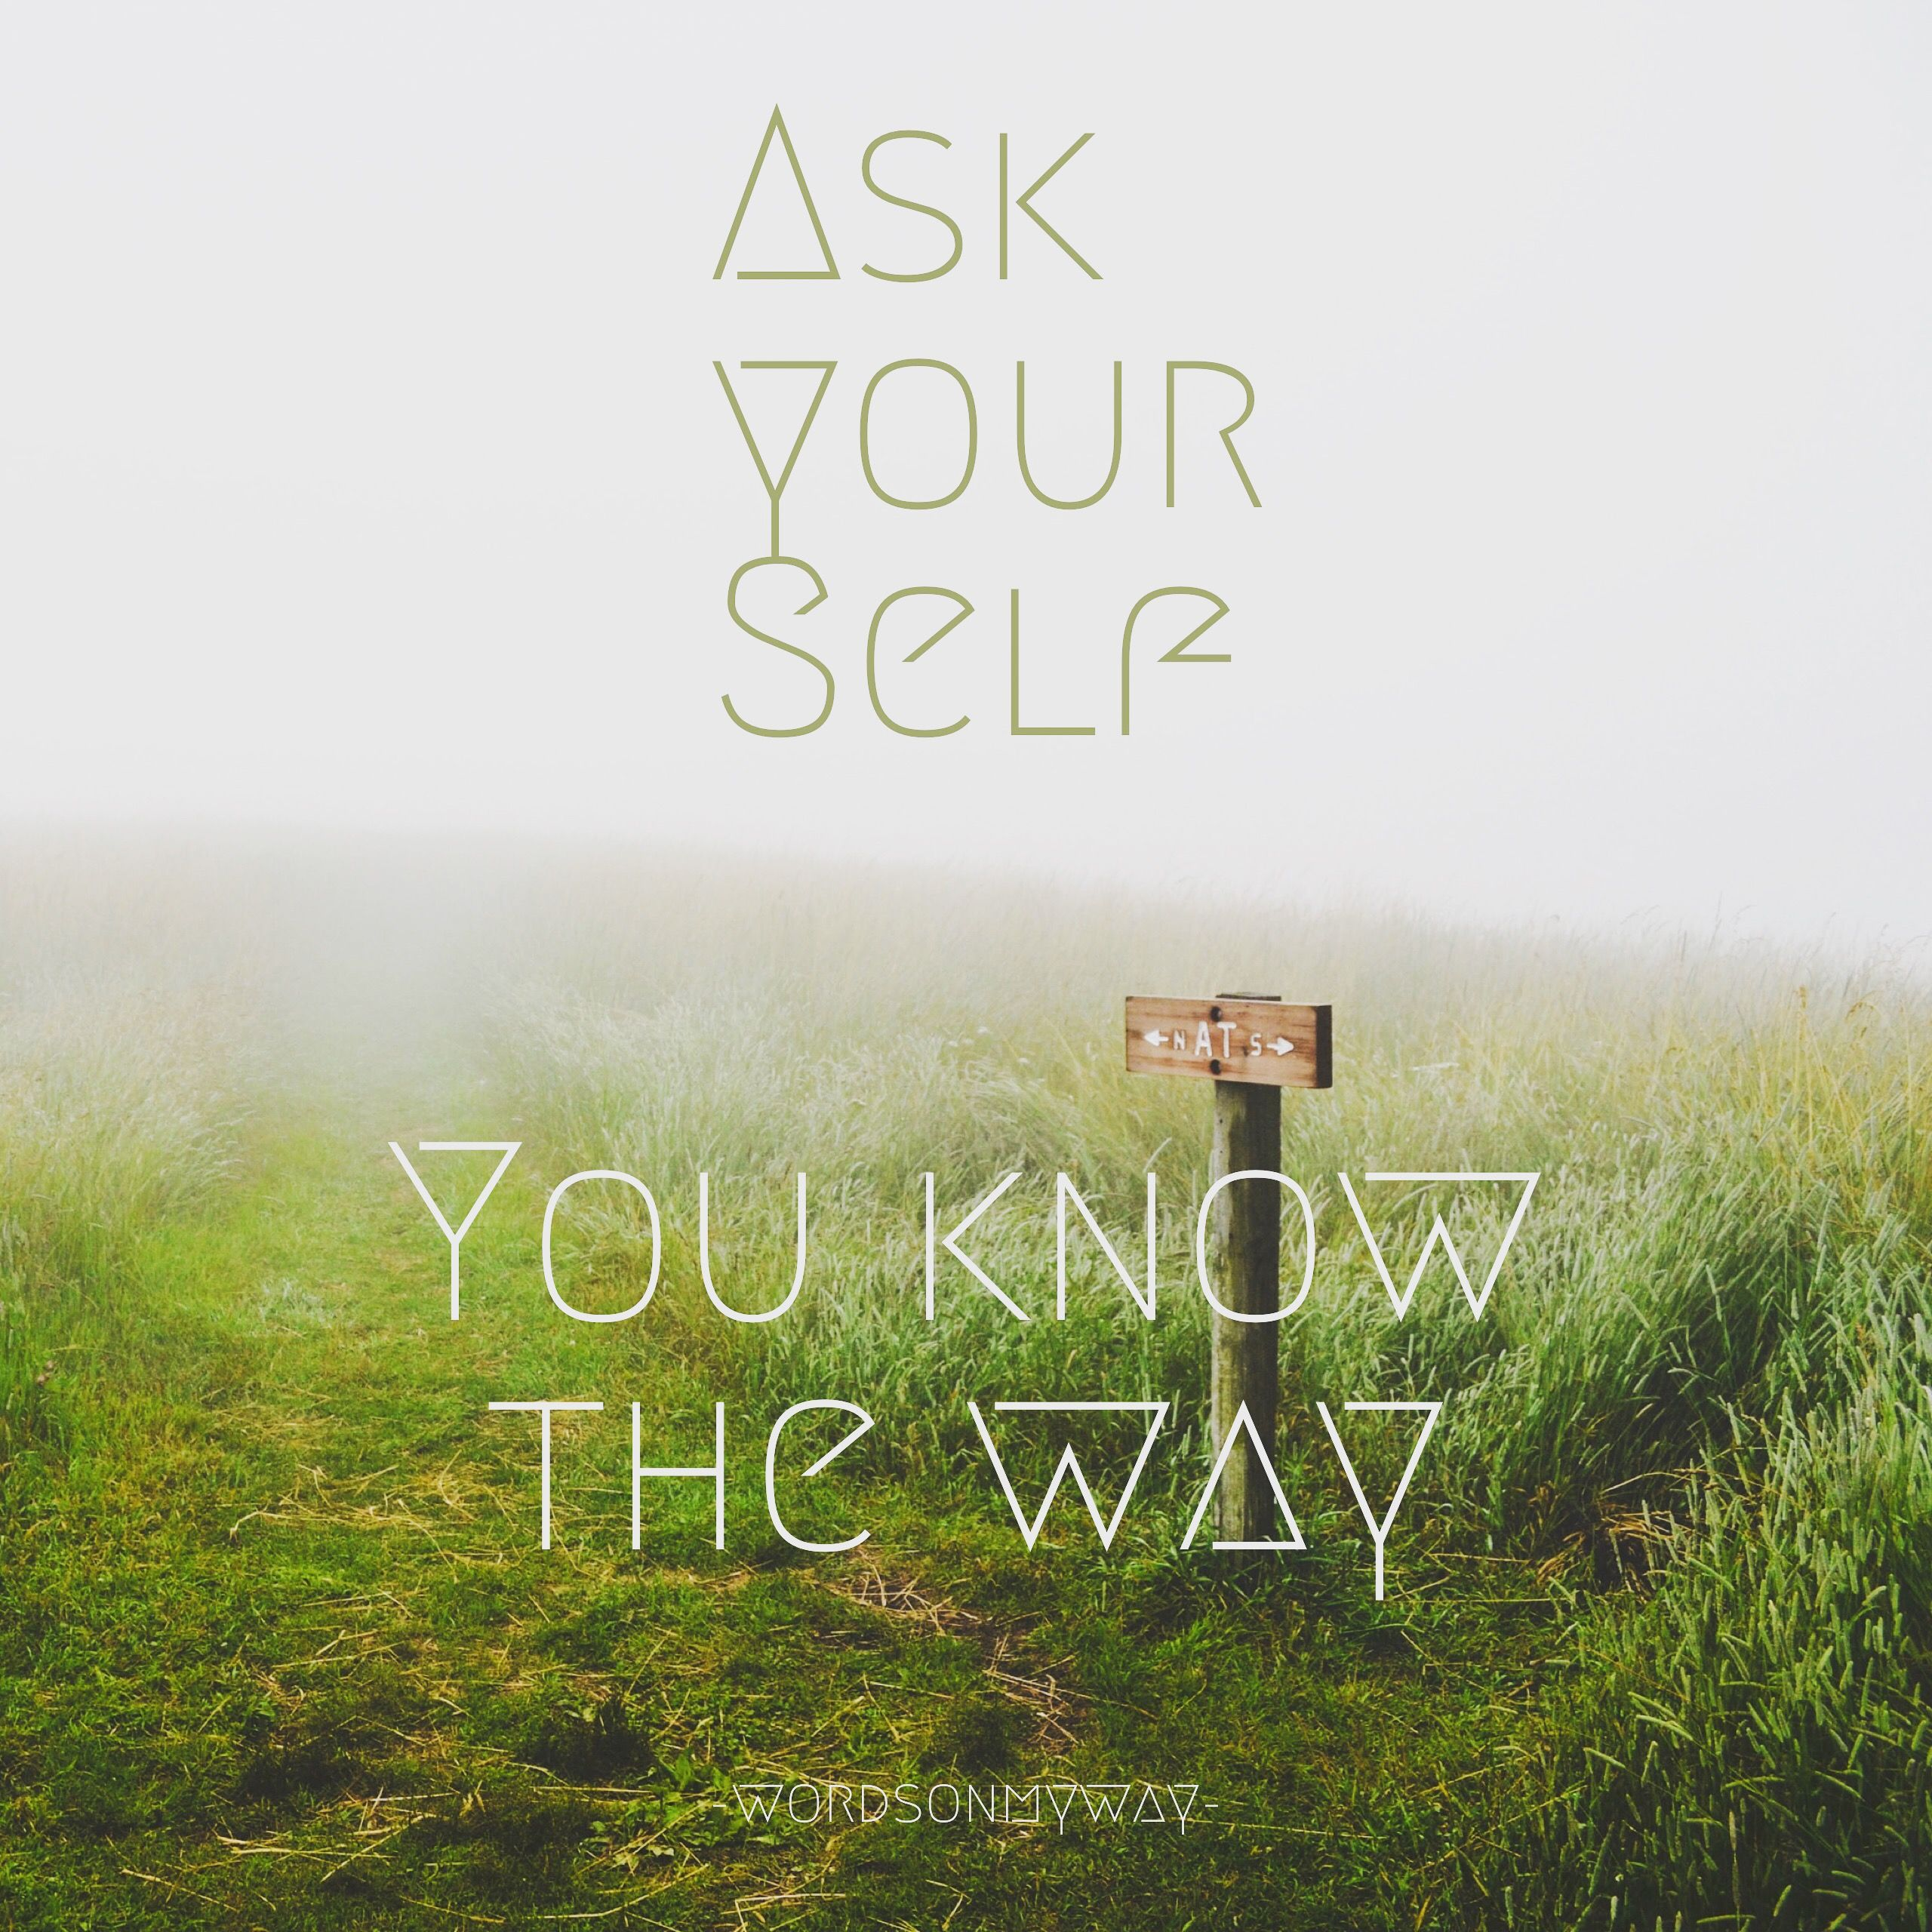 Ask your self, you know the way, your inner wisdom